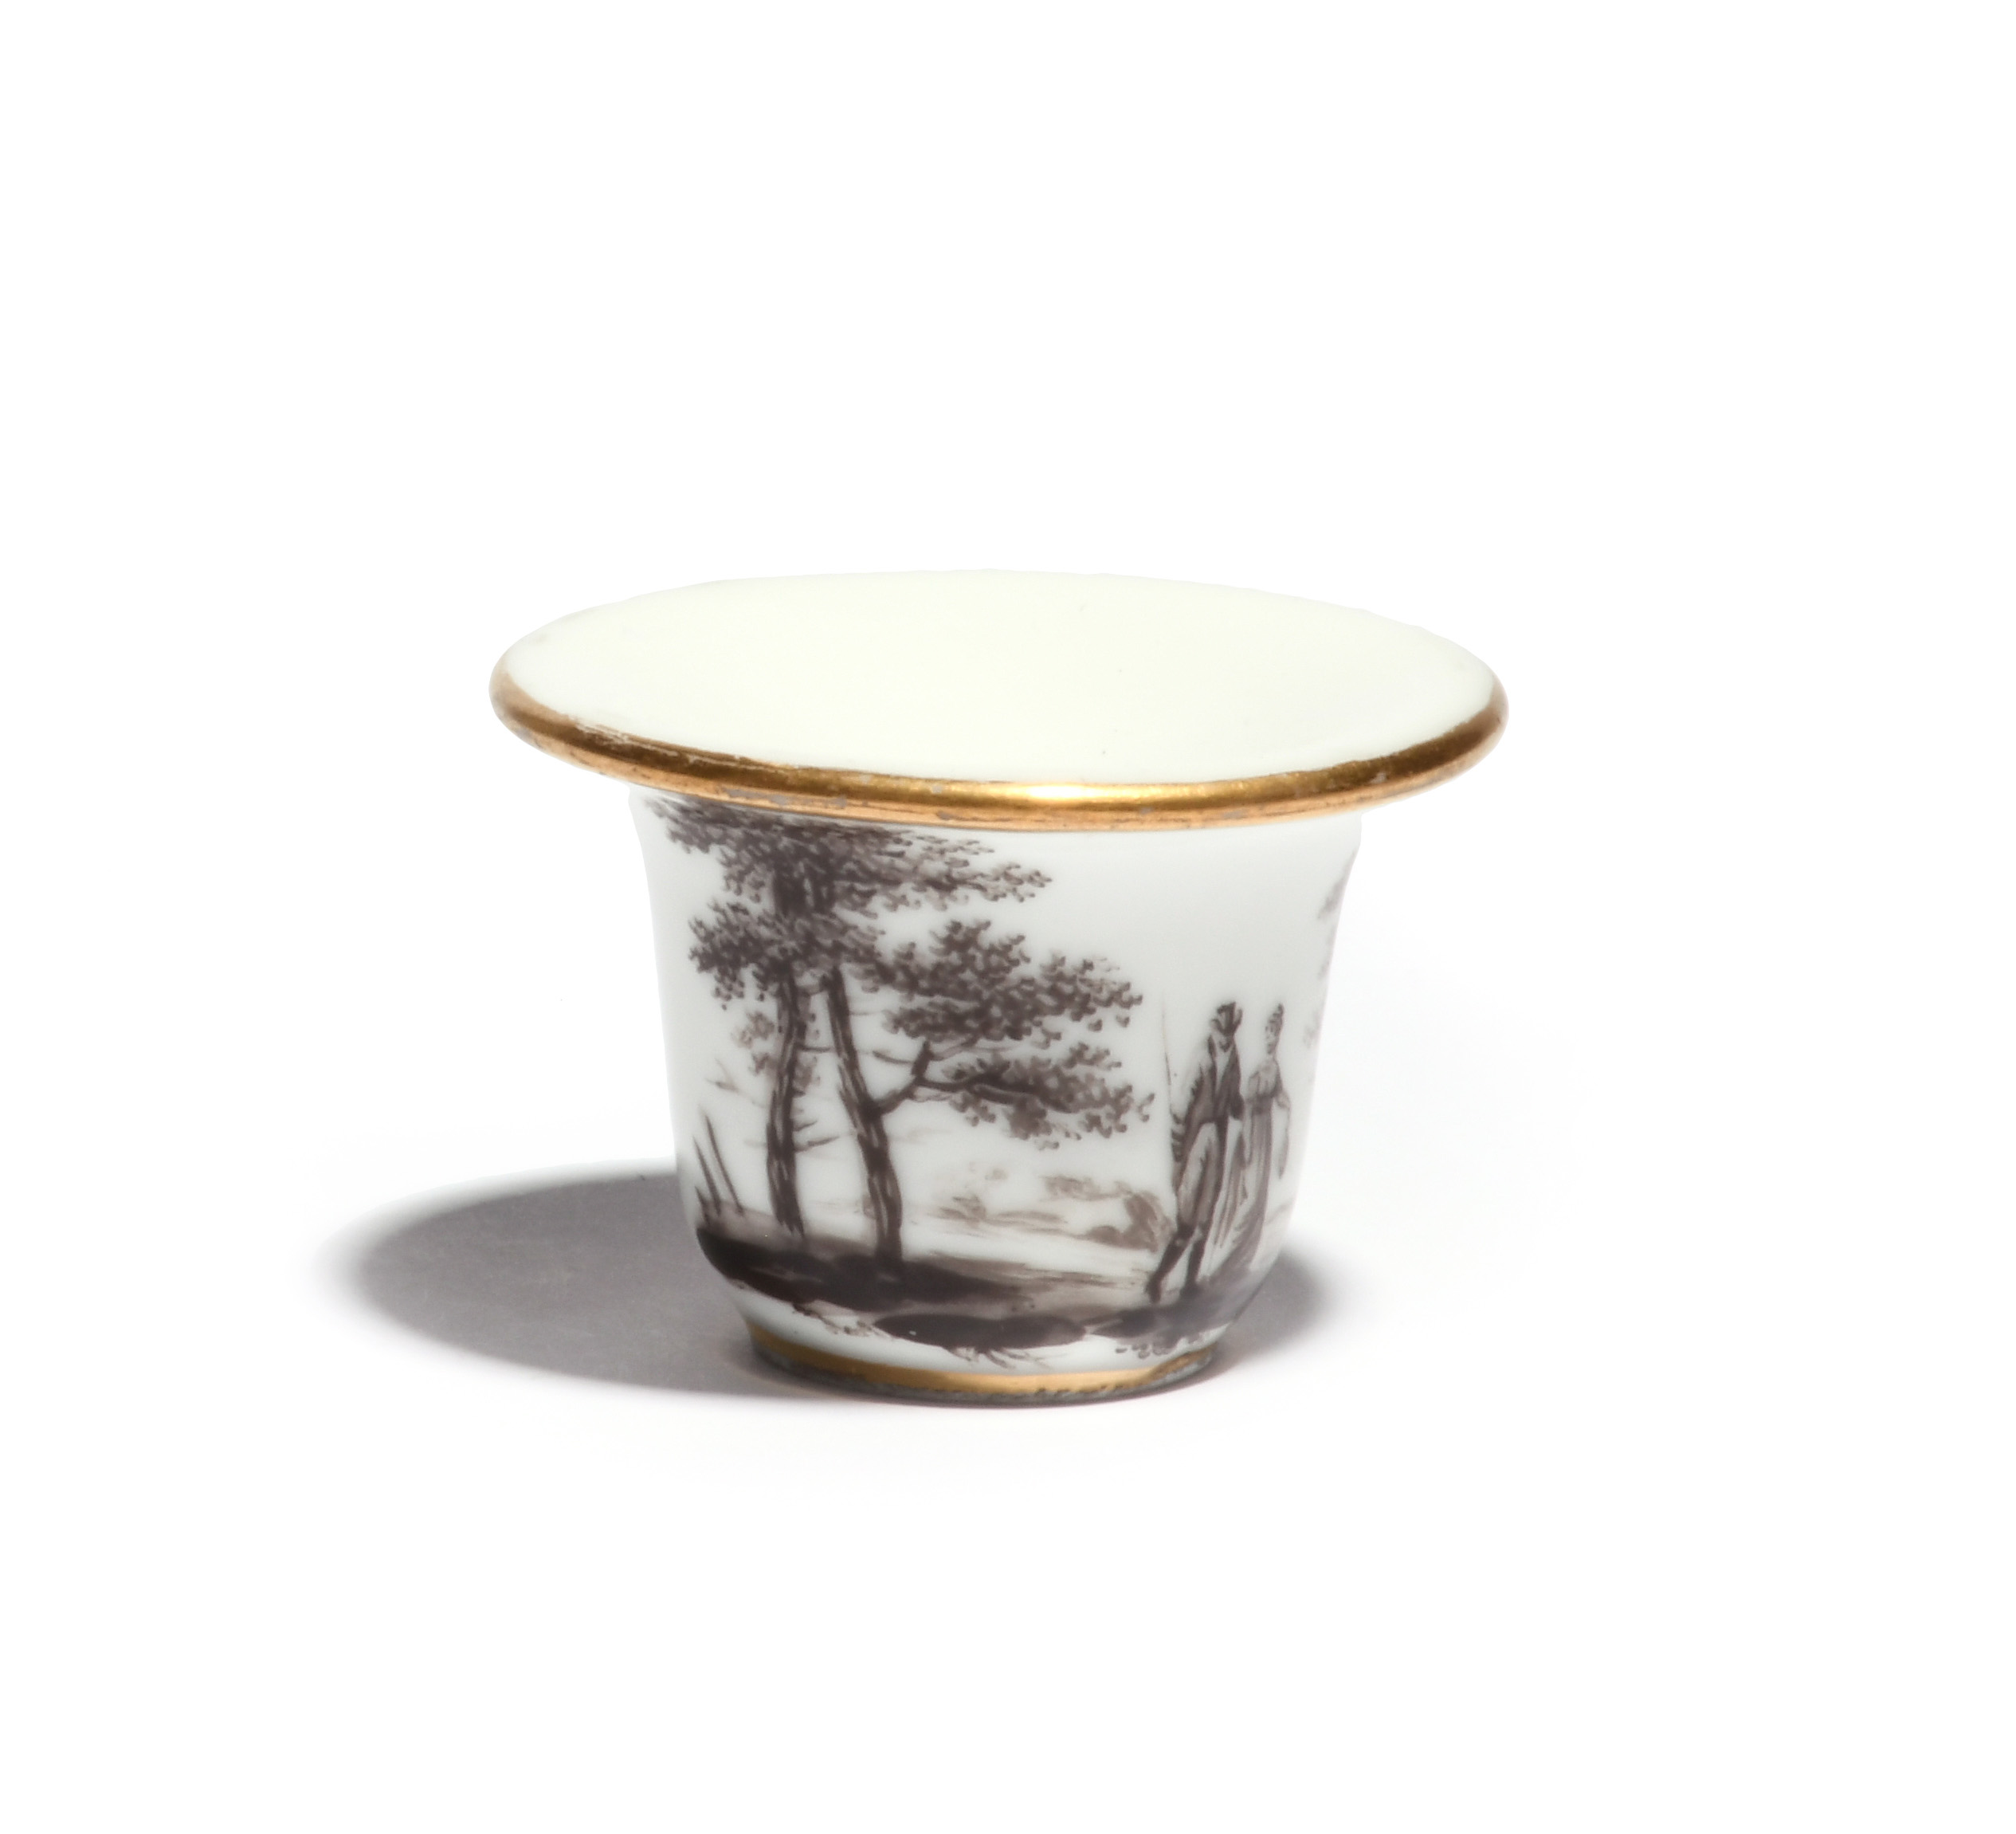 A rare Paris porcelain (Nast) rouge pot late 18th/early 19th century, the flared form decorated en